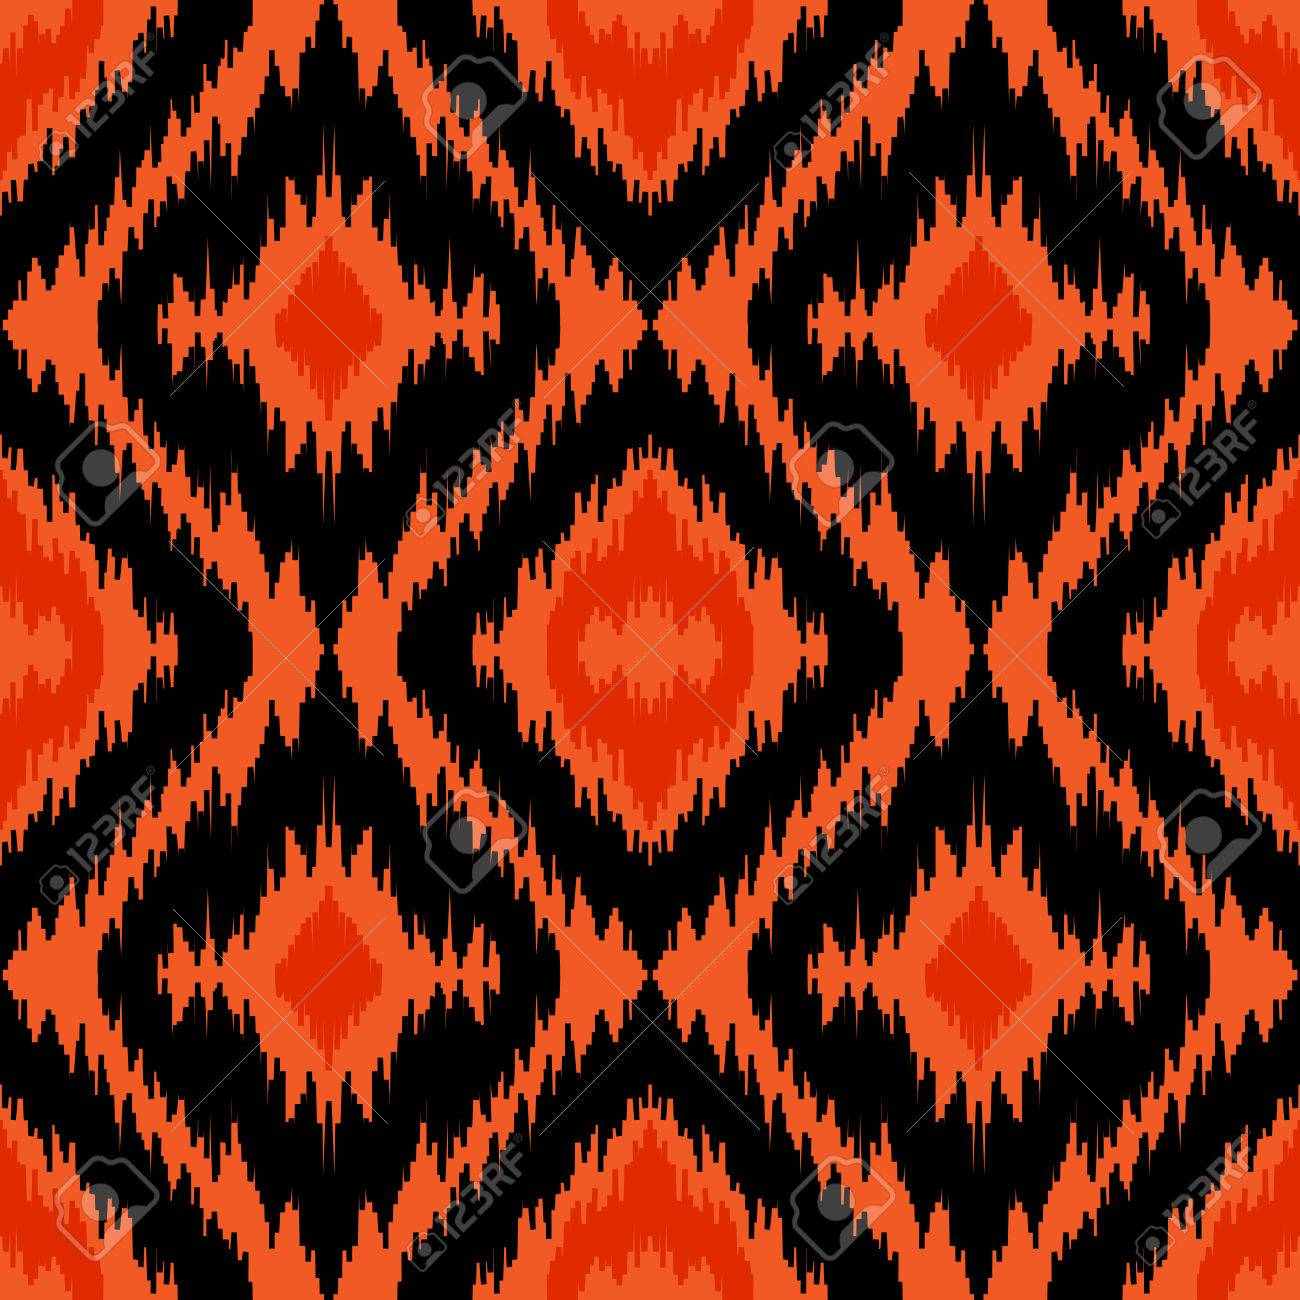 65353214 ethnic seamless black and orange pattern boho abstract textile print geometric wallpaper